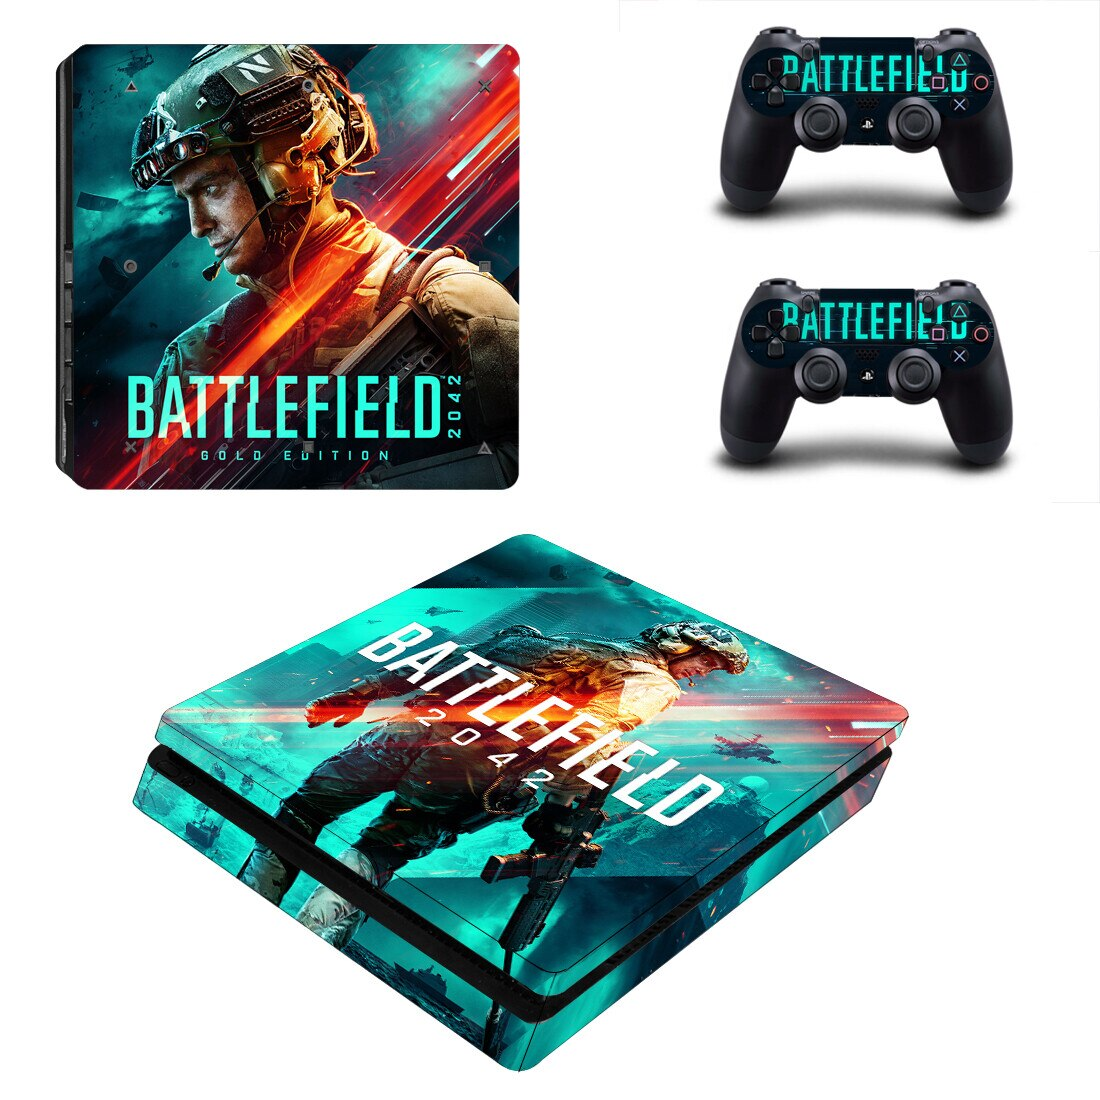 Battlefield 2042 PS4 Slim Skin Sticker For Sony PlayStation 4 Console and Controllers PS4 Slim Skins Sticker Decal Vinyl